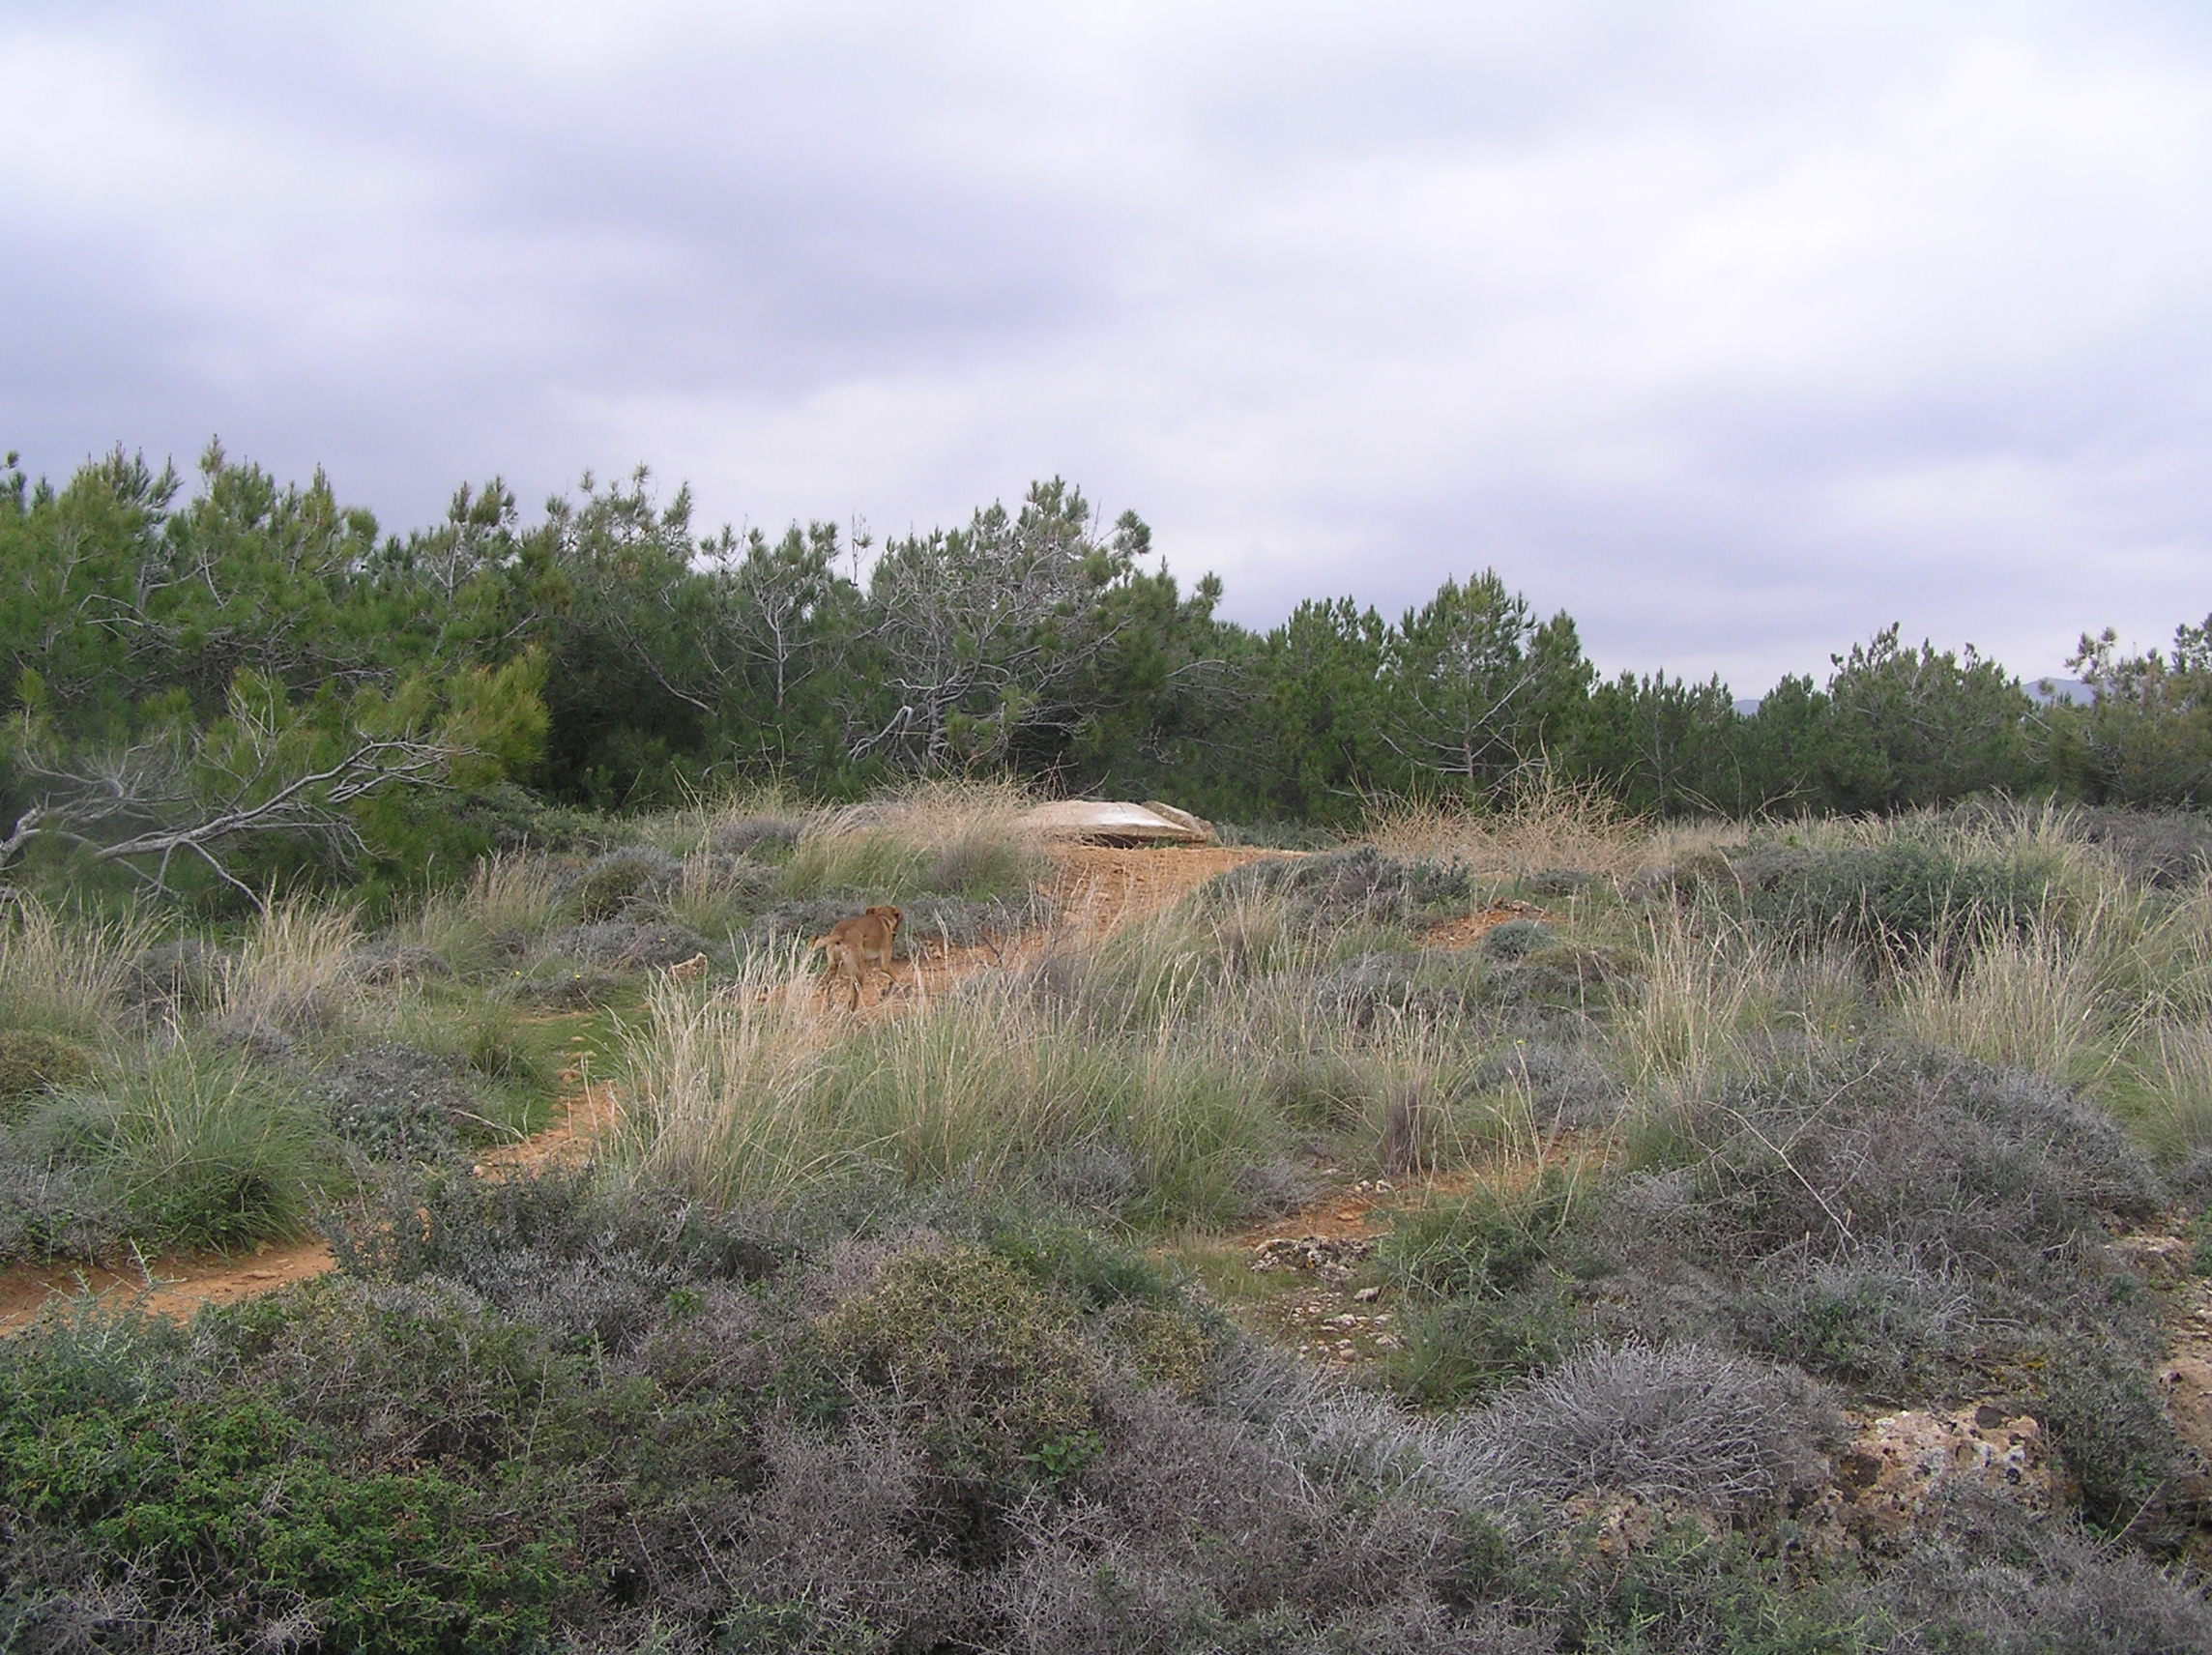 The bunkers are hidden in bushes today.